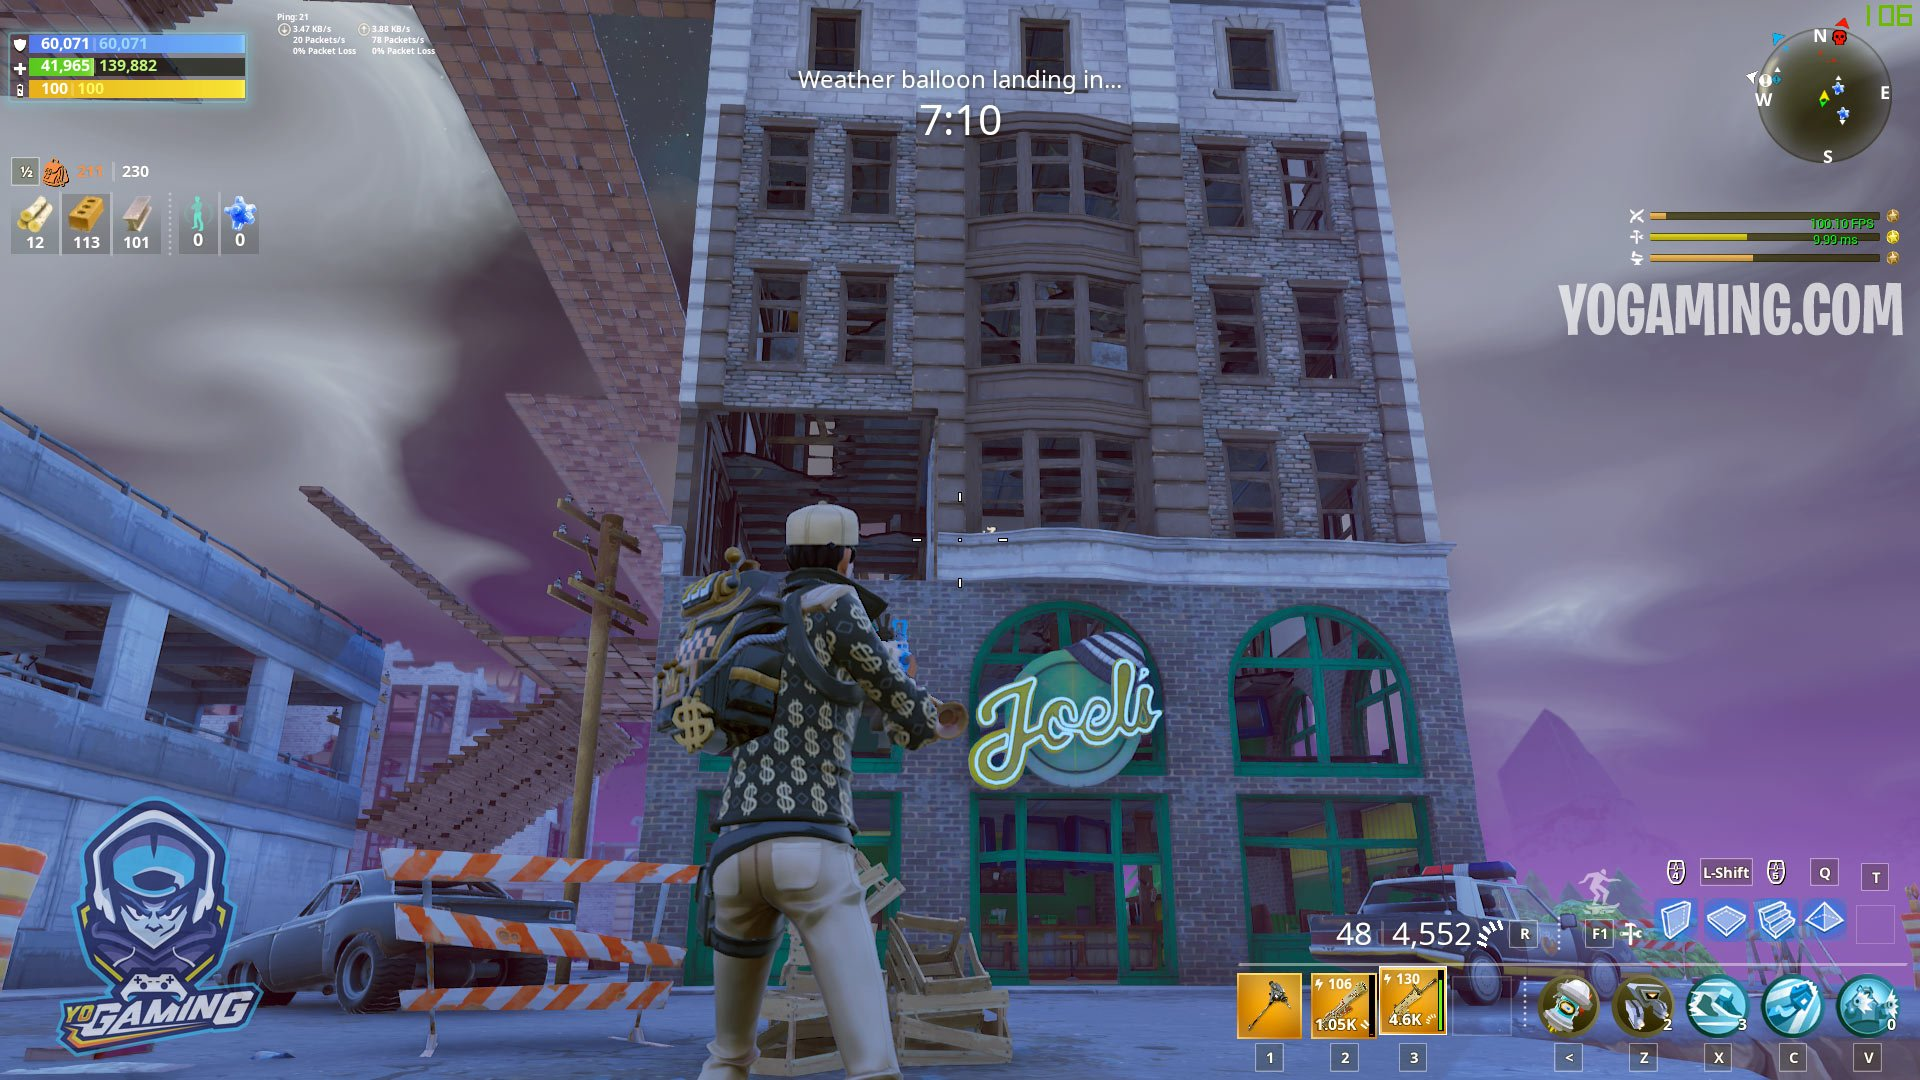 How To Find Joel S Pub In Fortnite Save The World Yogaming Com